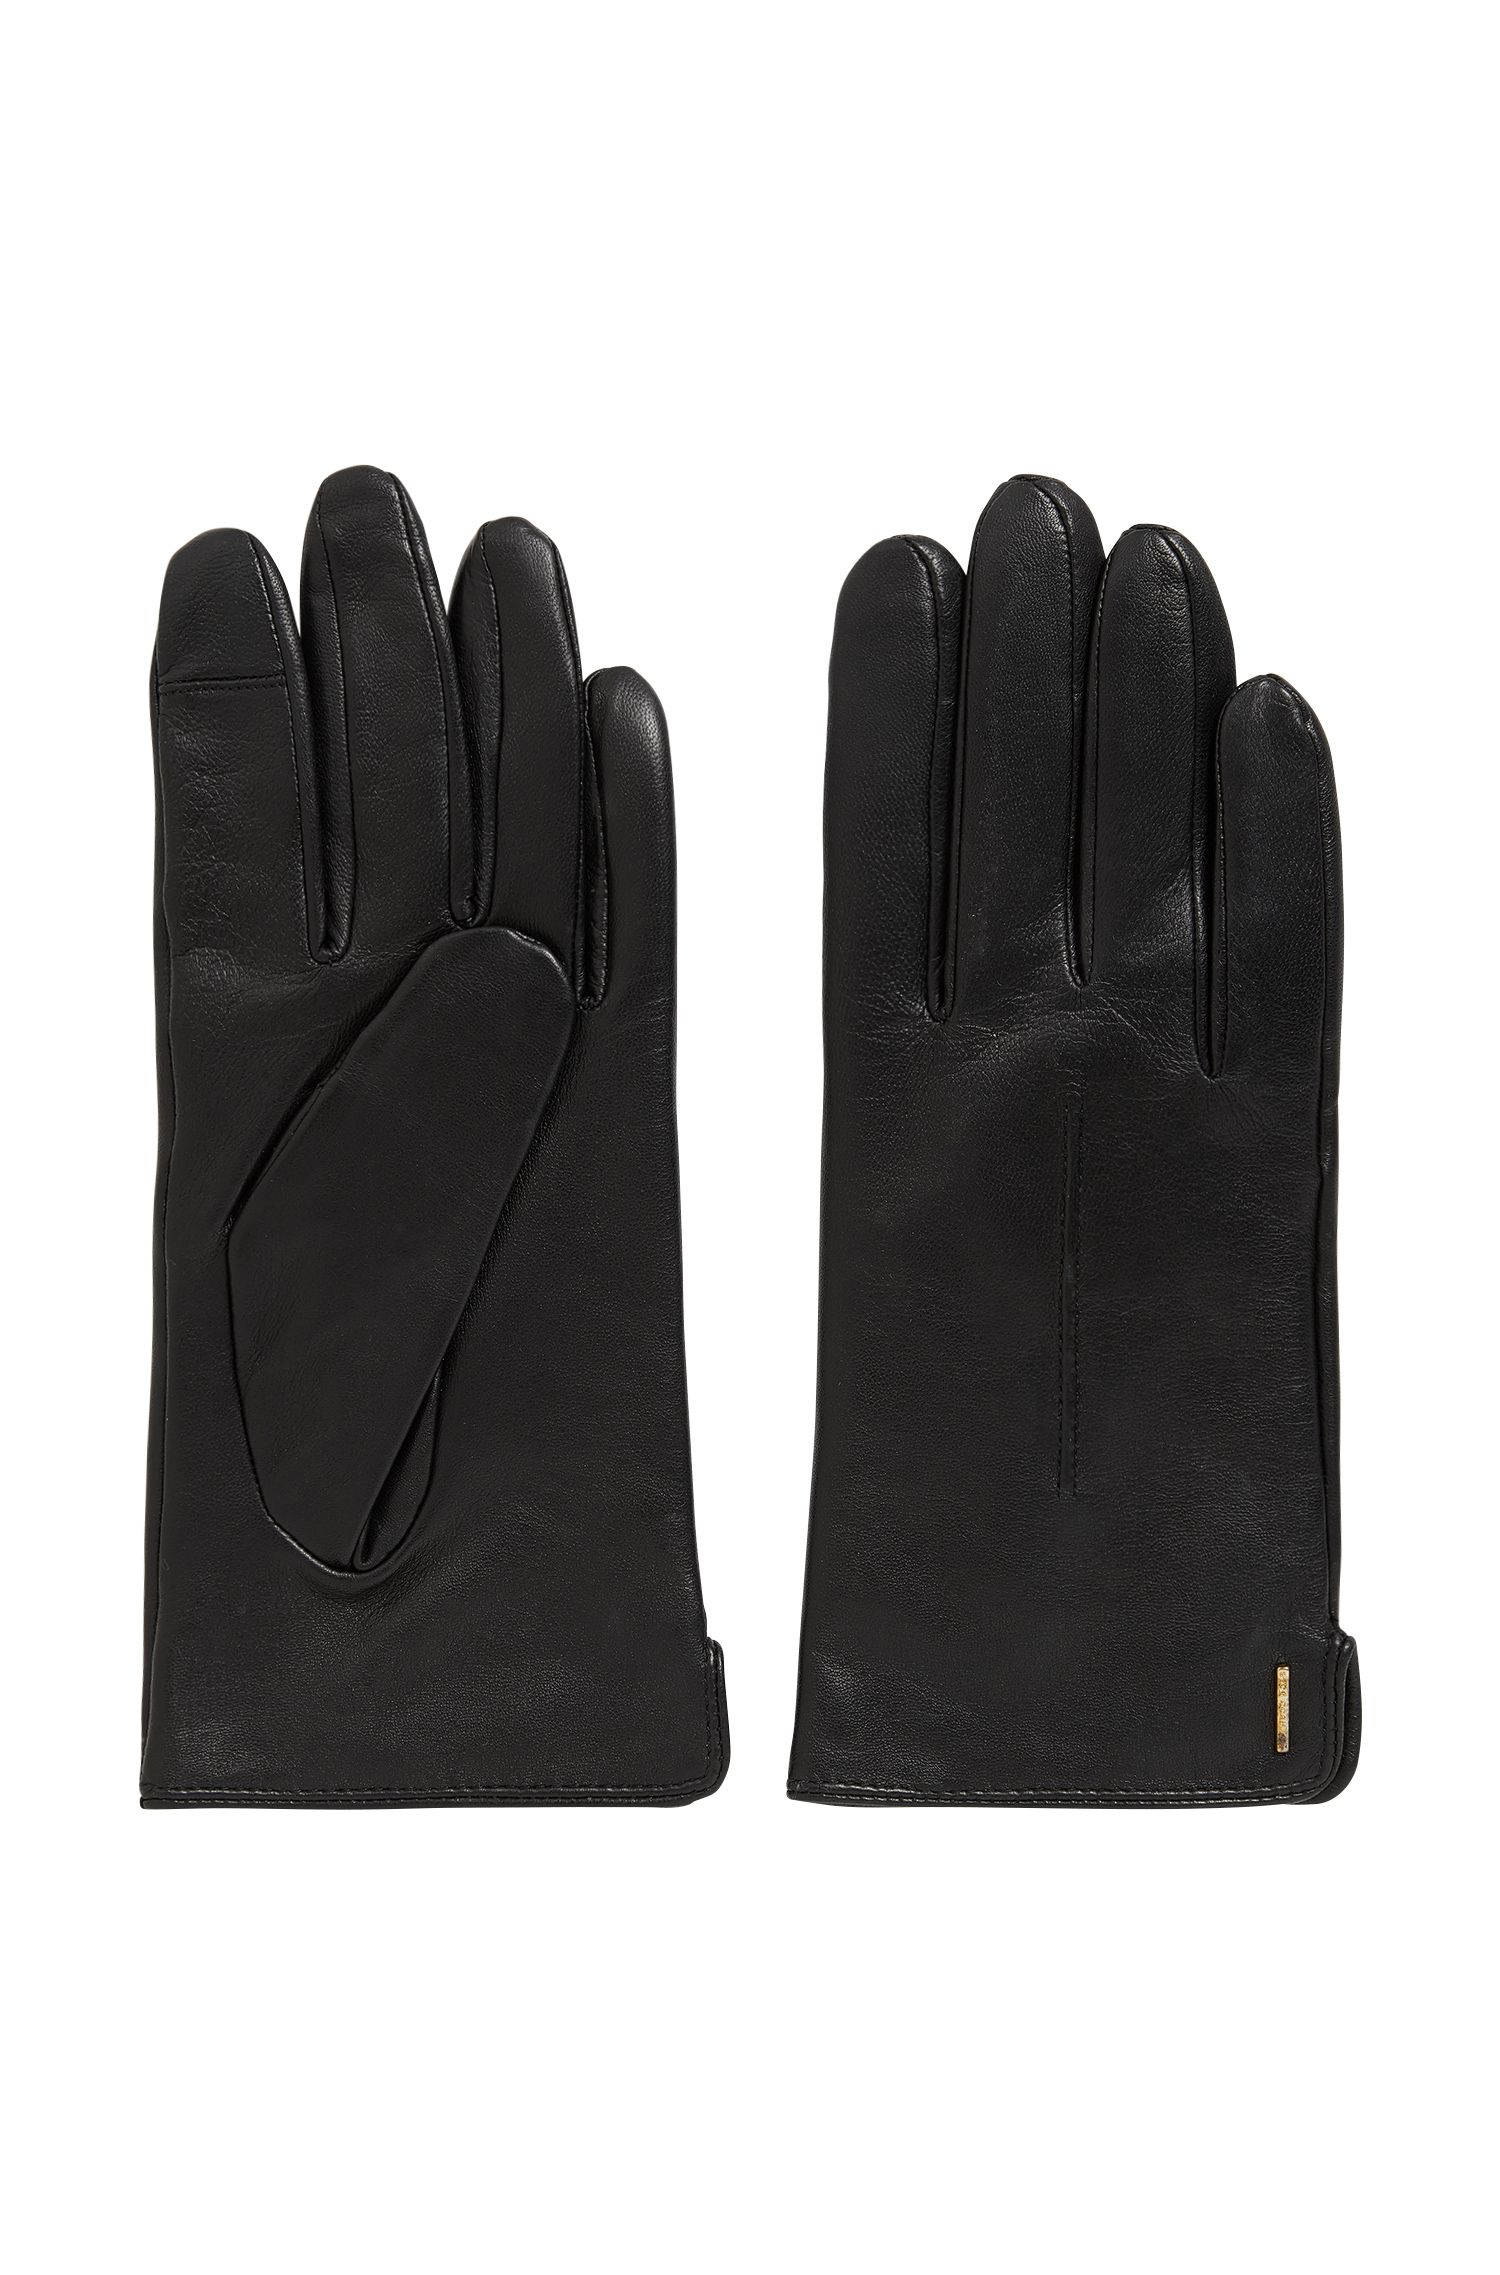 Leather gloves with touchscreen function